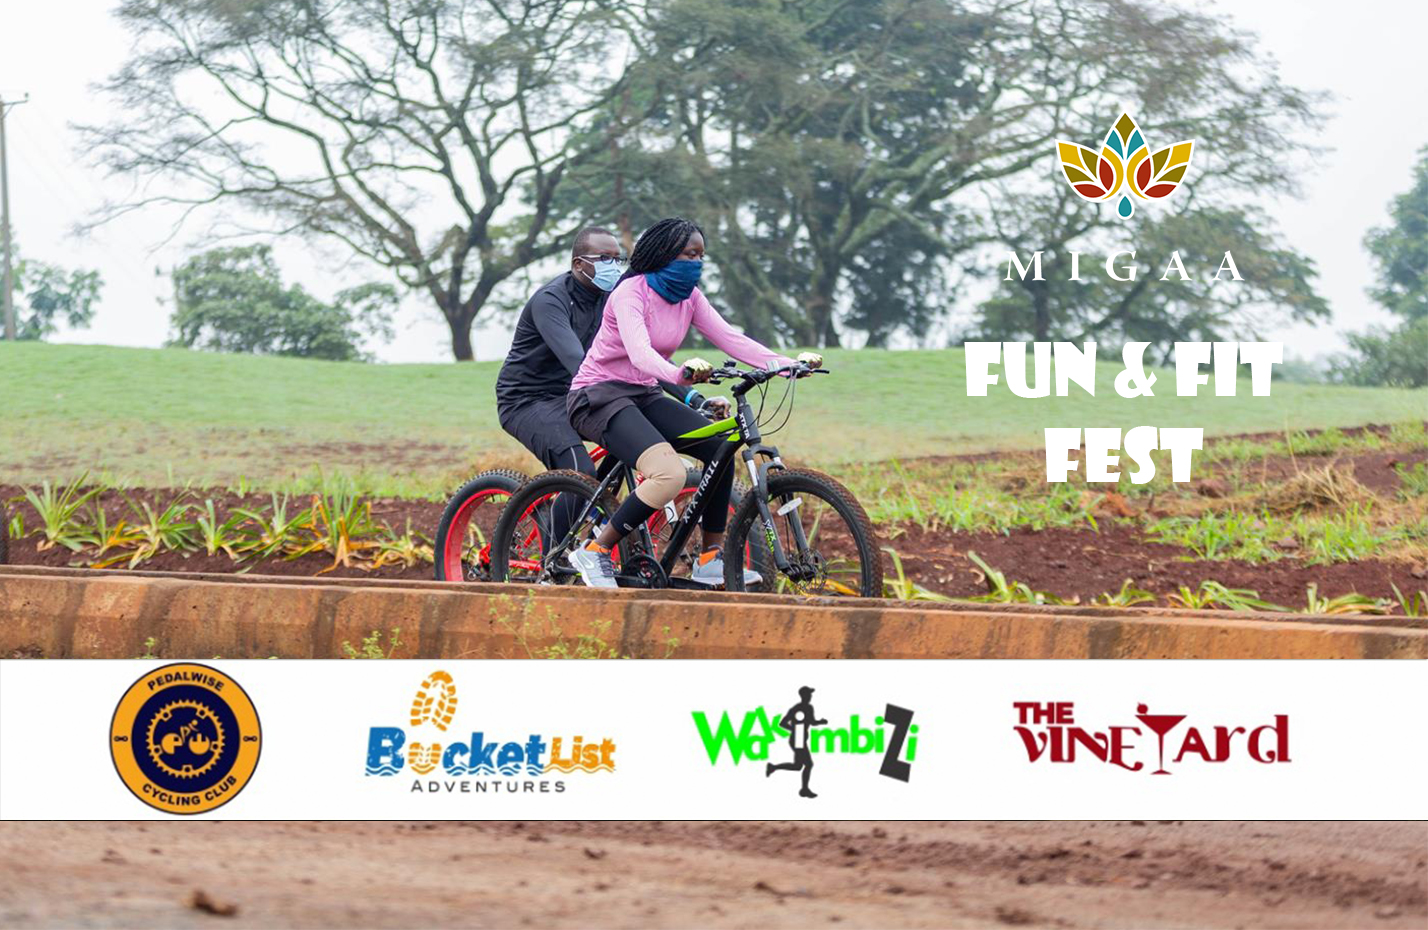 Migaa-Fun-and-Fit-Fest-2021